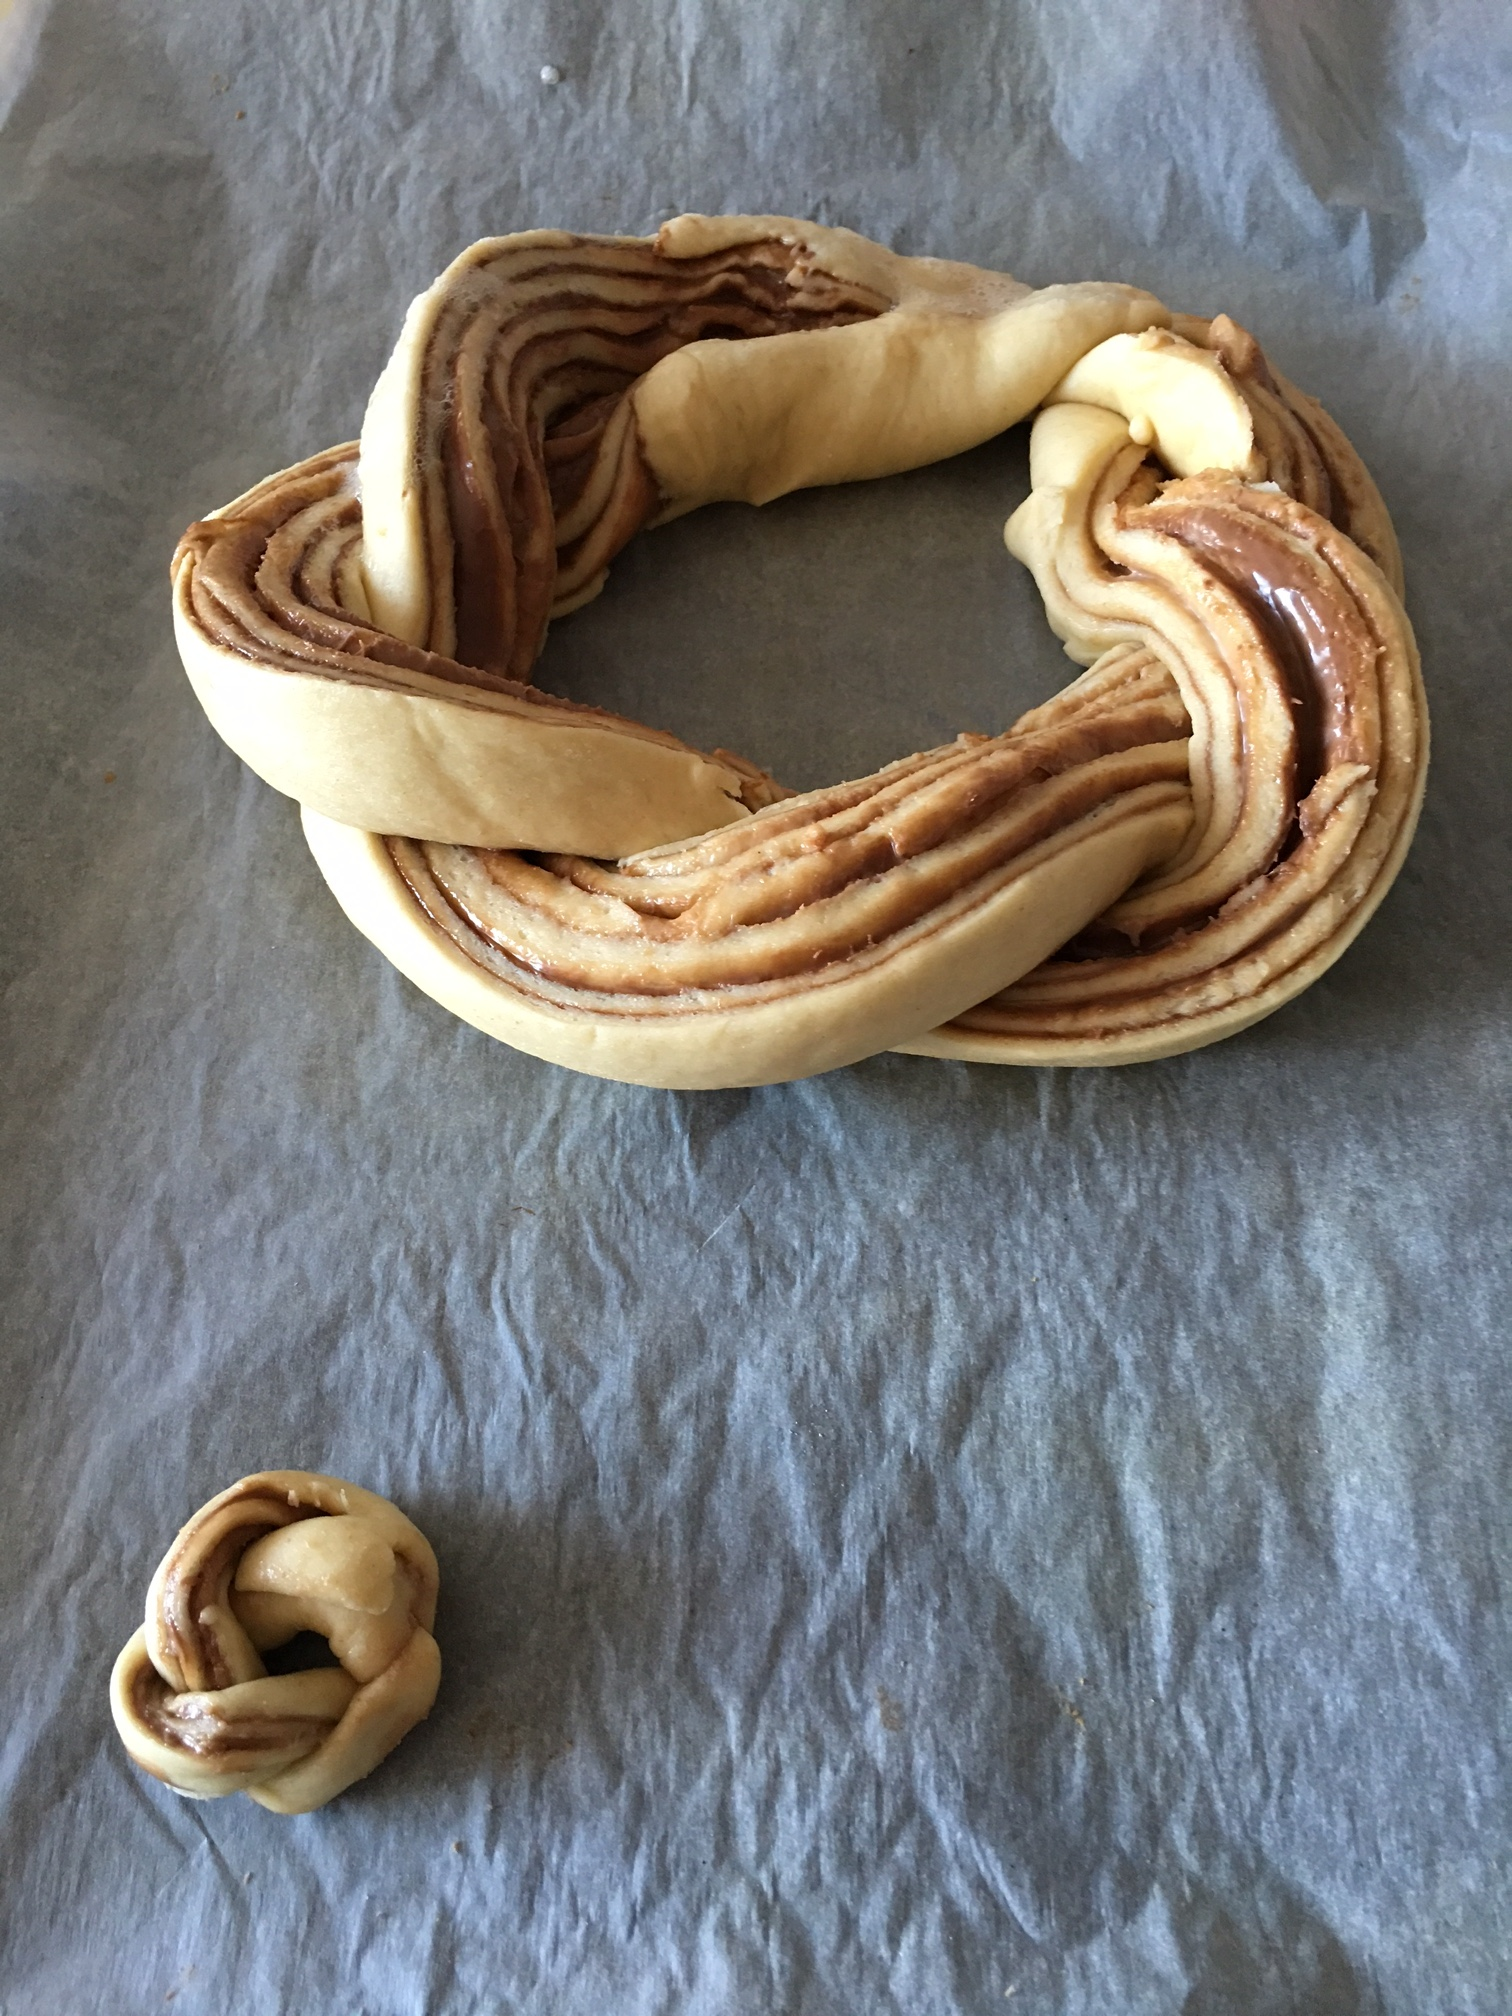 KRINGLE ESTONIA CON NUTELLA